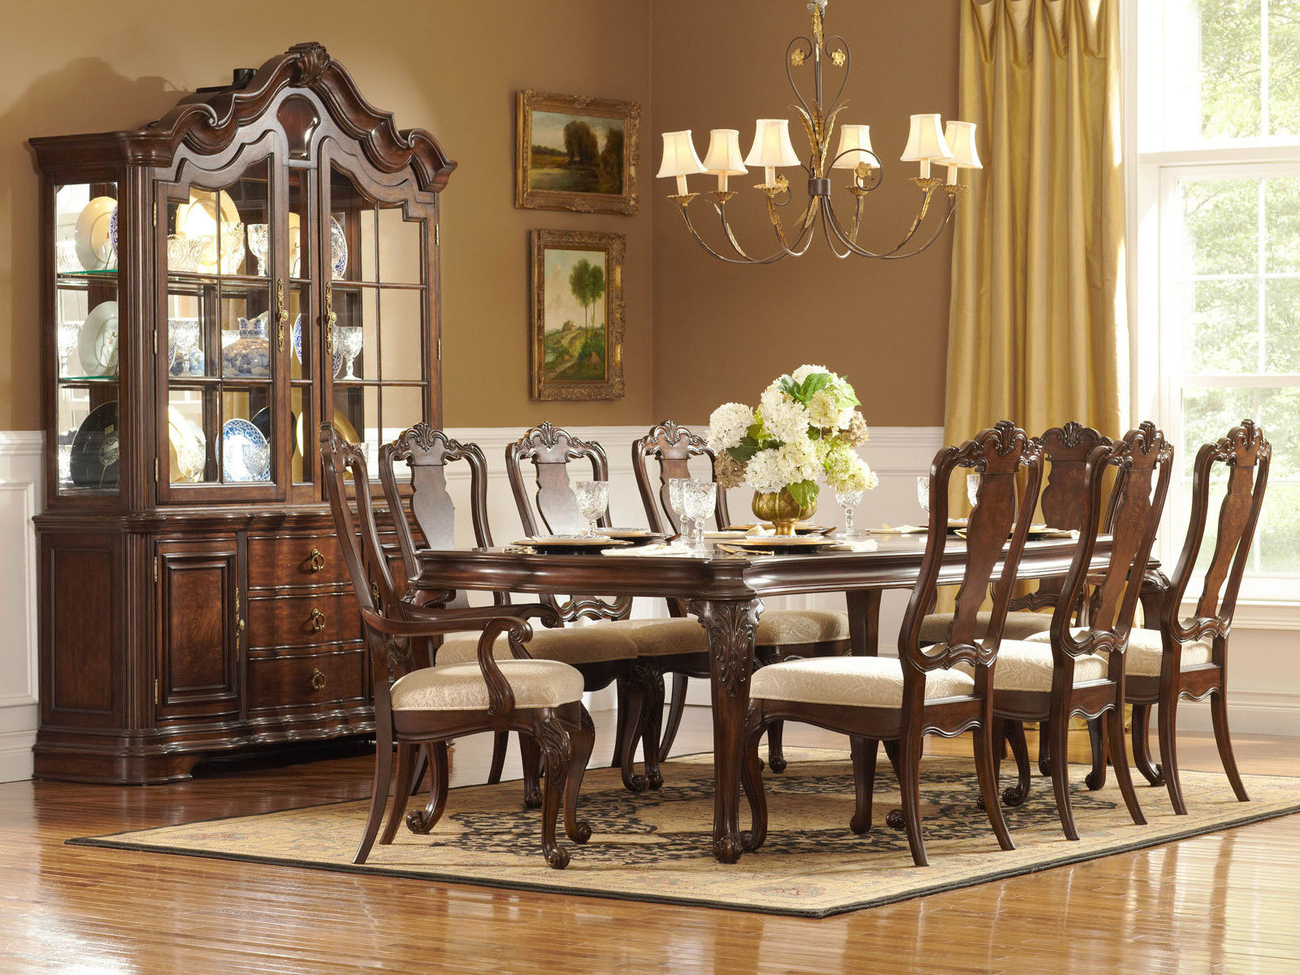 2017 How To Choose Elegant Dining Room Furniture Sets For Medium Elegant Dining Tables (View 6 of 30)